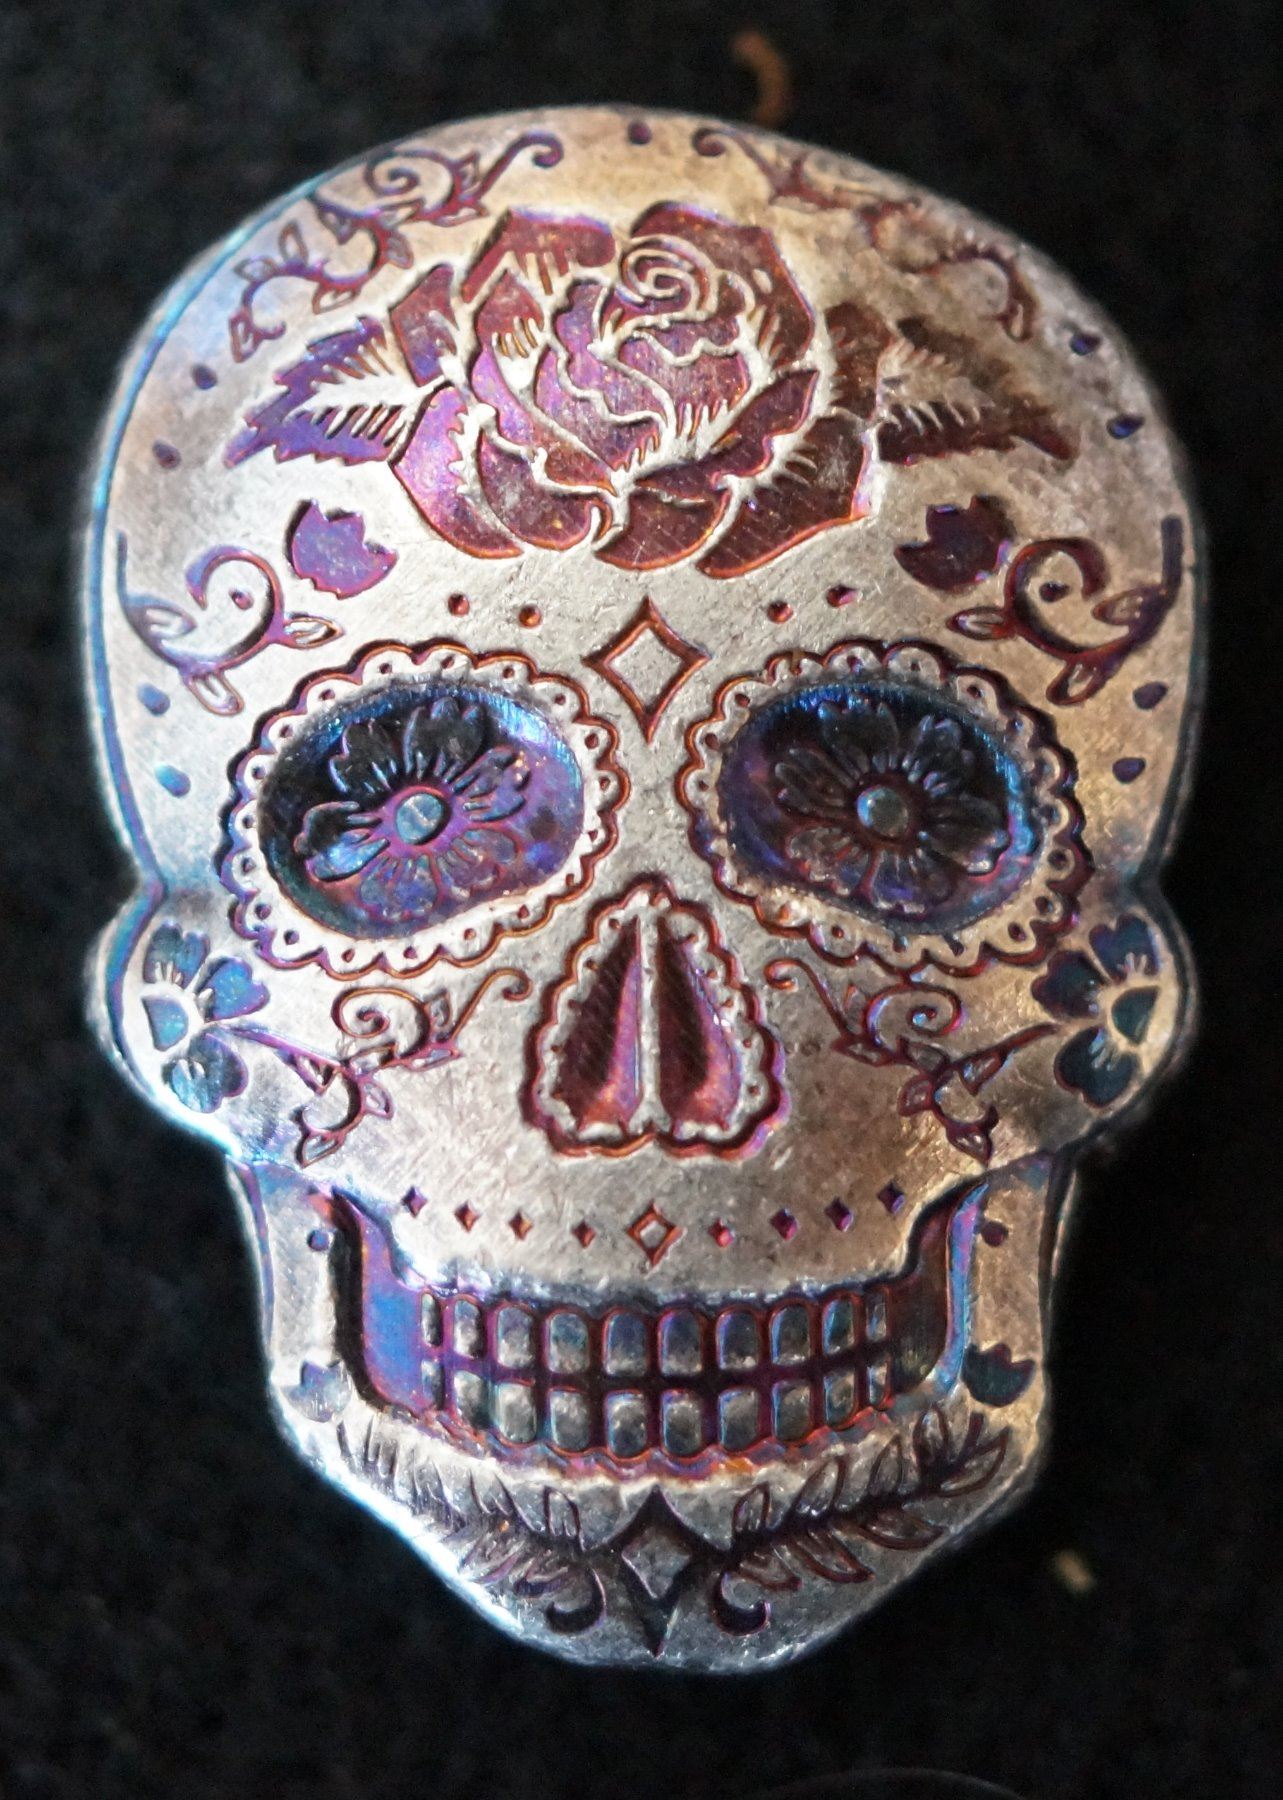 2 Oz Silver Sugar Skull Monarch 3d Poured Bar Day Of The